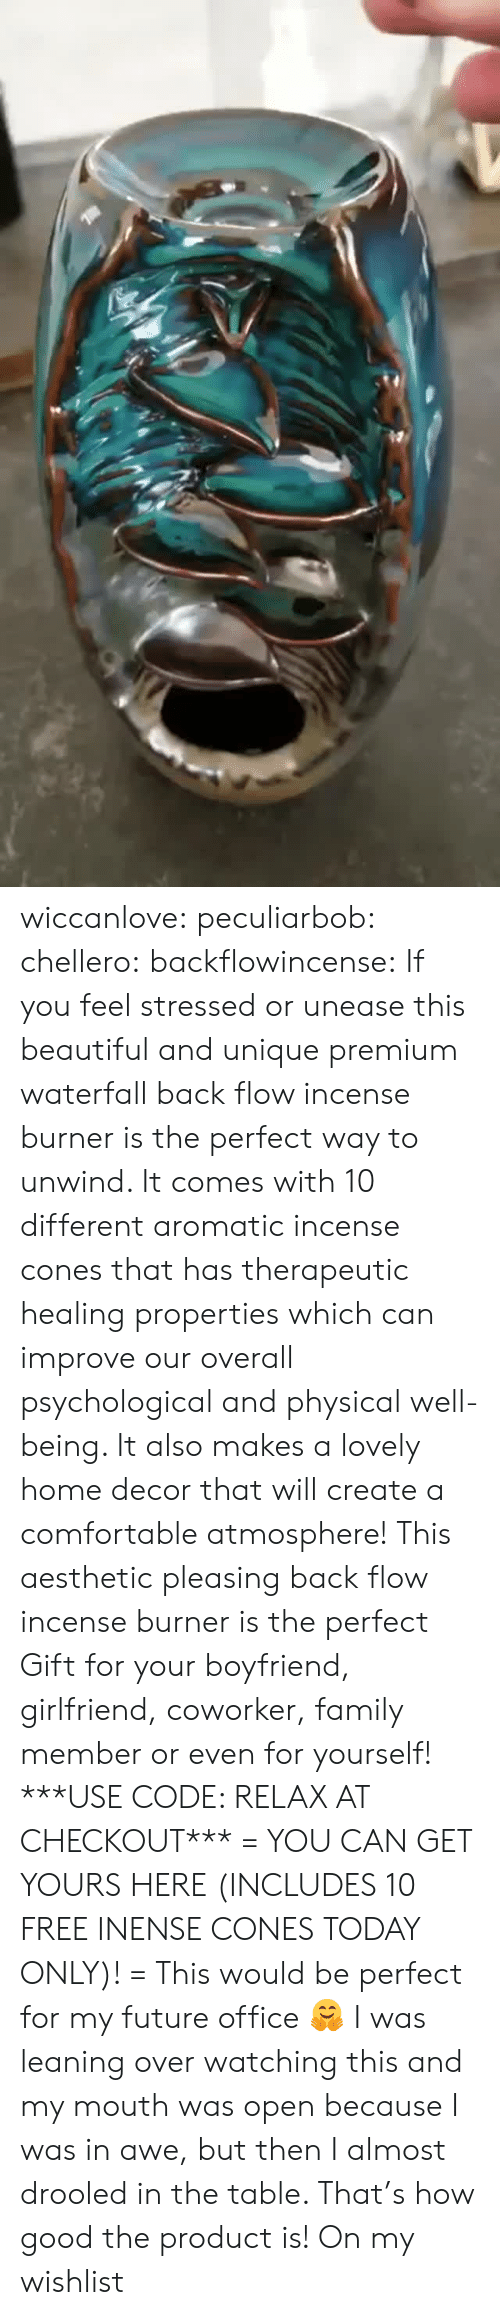 cones: wiccanlove:  peculiarbob: chellero:   backflowincense:  If you feel stressed or unease this beautiful and unique premium waterfall back flow incense burner is the perfect way to unwind. It comes with 10 different aromatic incense cones that has therapeutic healing properties which can improve our overall psychological and physical well-being. It also makes a lovely home decor that will create a comfortable atmosphere! This aesthetic pleasing back flow incense burner is the perfect Gift for your boyfriend, girlfriend, coworker, family member or even for yourself! ***USE CODE: RELAX AT CHECKOUT*** = YOU CAN GET YOURS HERE (INCLUDES 10 FREE INENSE CONES TODAY ONLY)! =   This would be perfect for my future office 🤗   I was leaning over watching this and my mouth was open because I was in awe, but then I almost drooled in the table. That's how good the product is!   On my wishlist